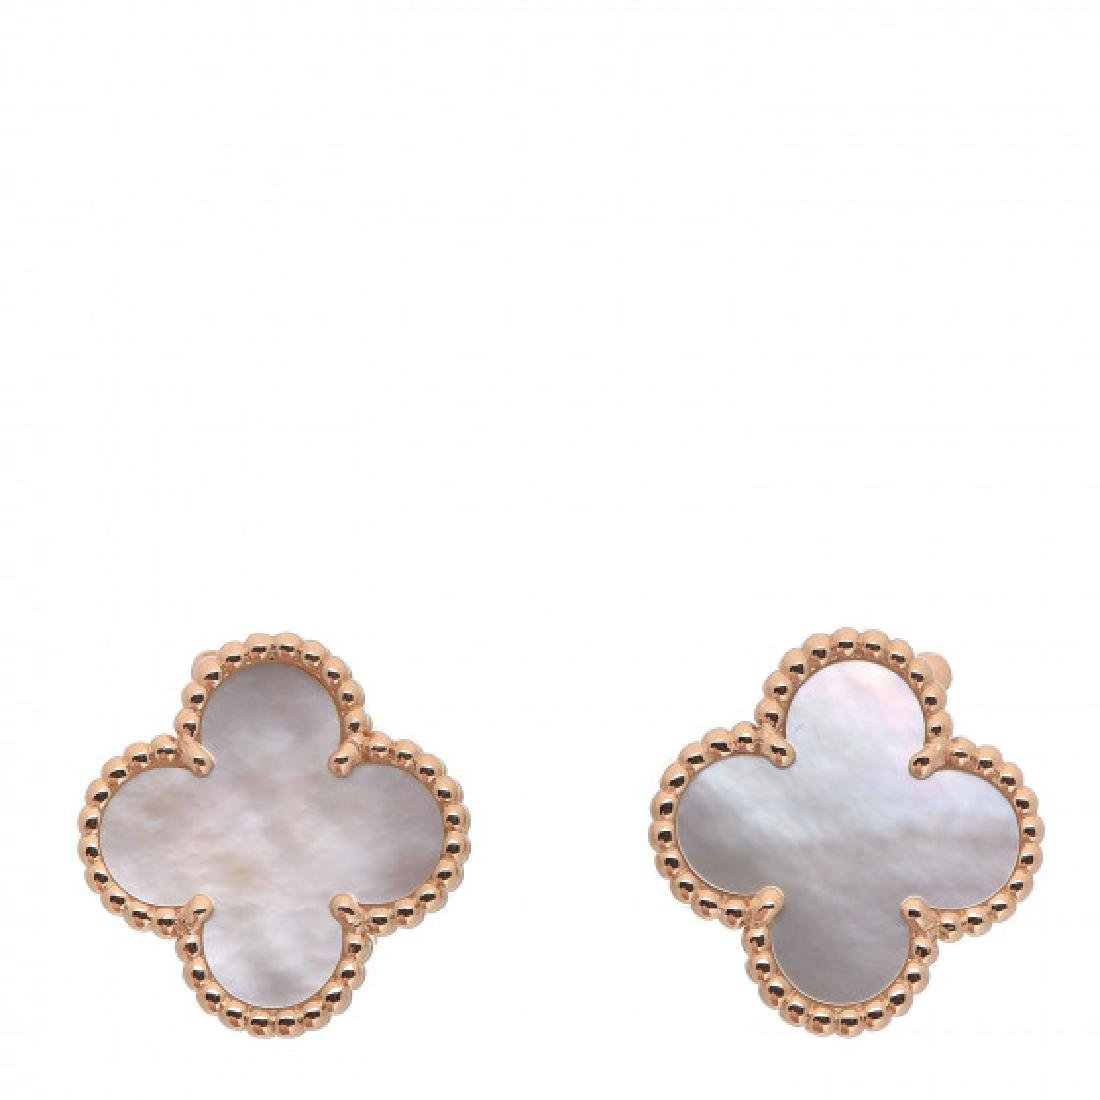 Van Cleef & Arpels MOP earrings